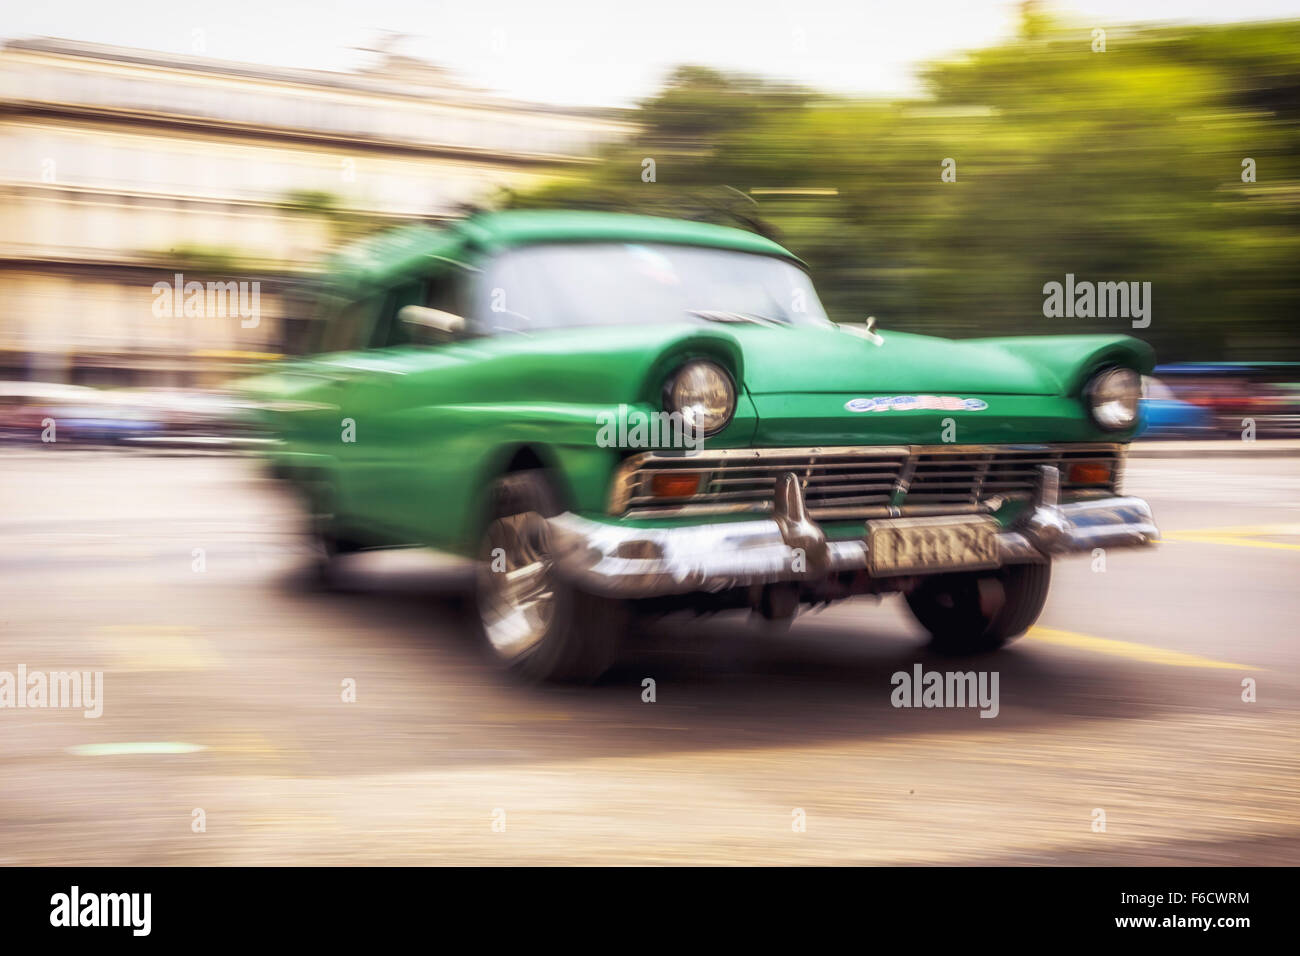 Speed, blurred, traveling old car, vintage green in the streets, old American road cruiser on the streets of Havana, - Stock Image